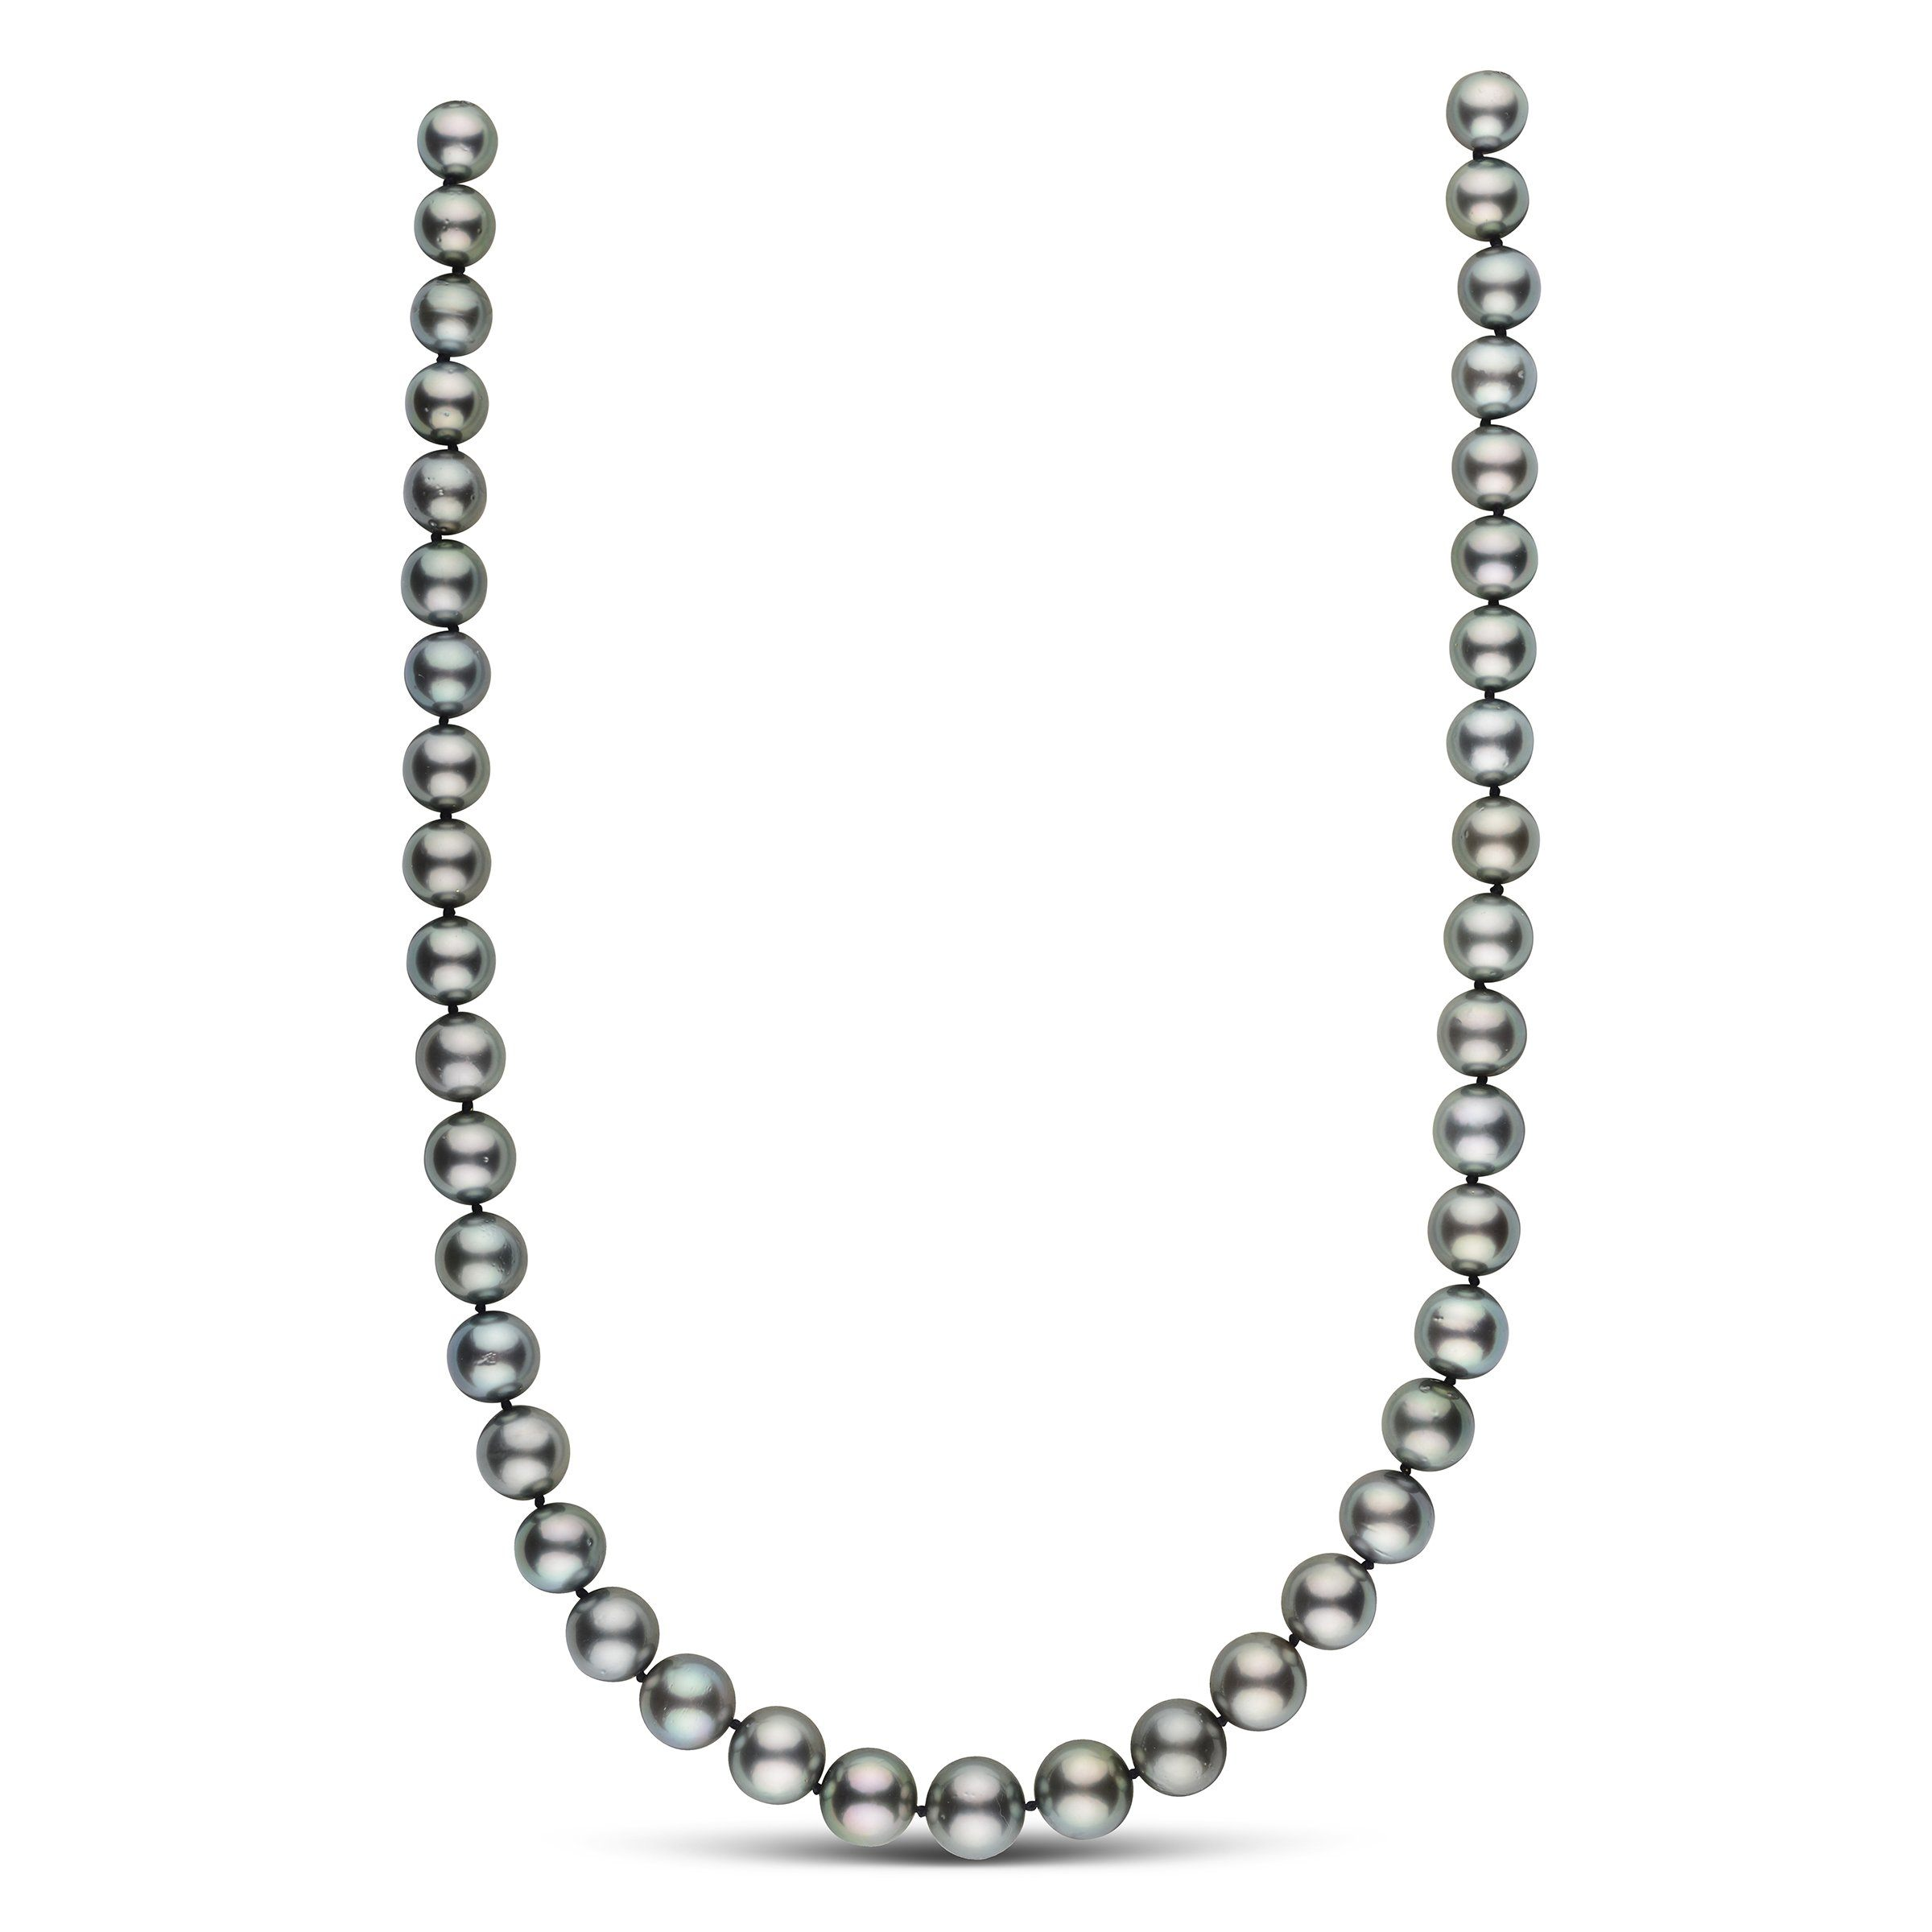 18 inch 9.5-11.6 mm AA+ Round Tahitian Pearl Necklace